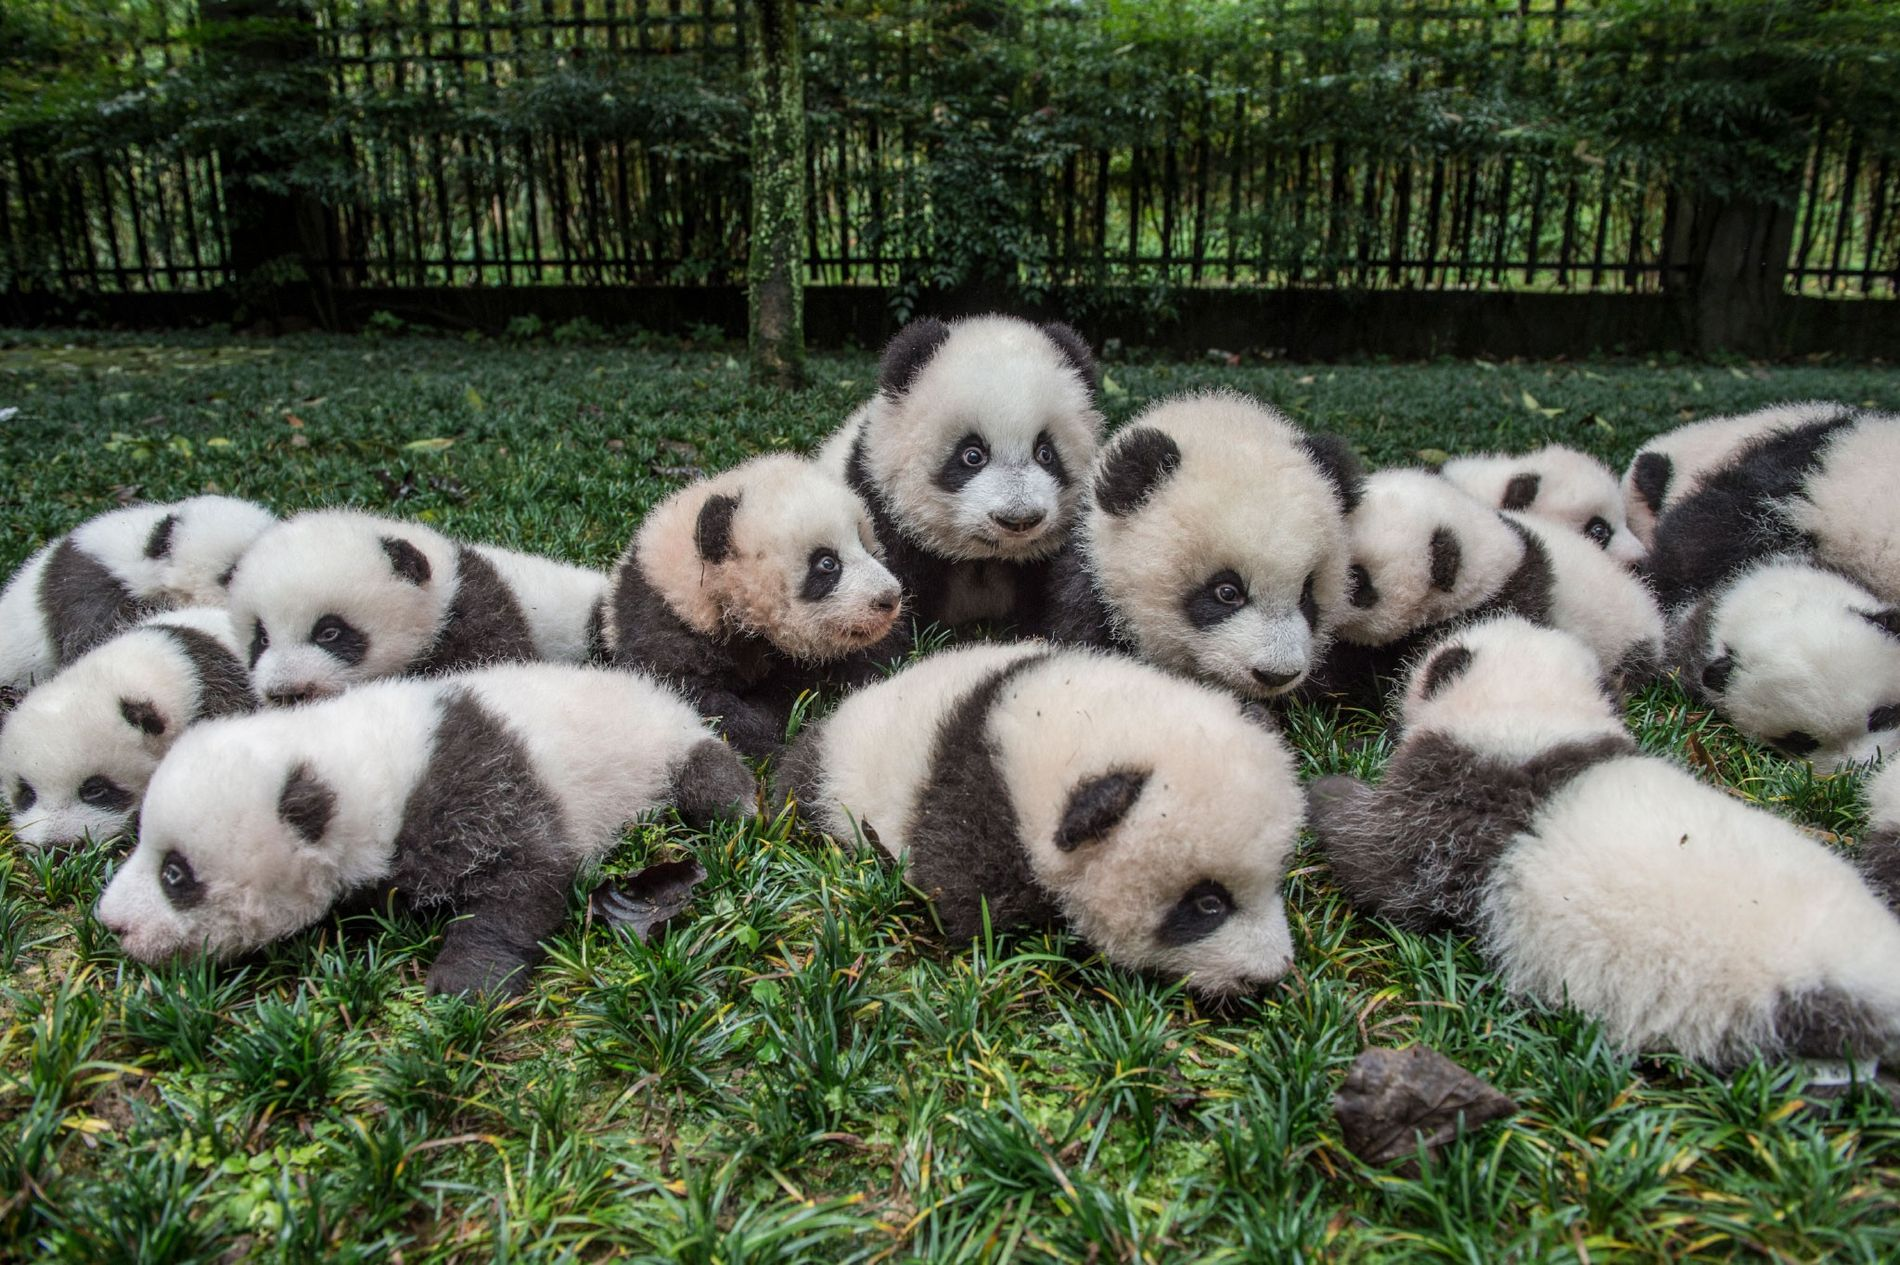 A bumper crop of giant panda cubs are brought out for a portrait at the Bifengxia Giant Panda Breeding and Research Center in Sichuan Province, China.